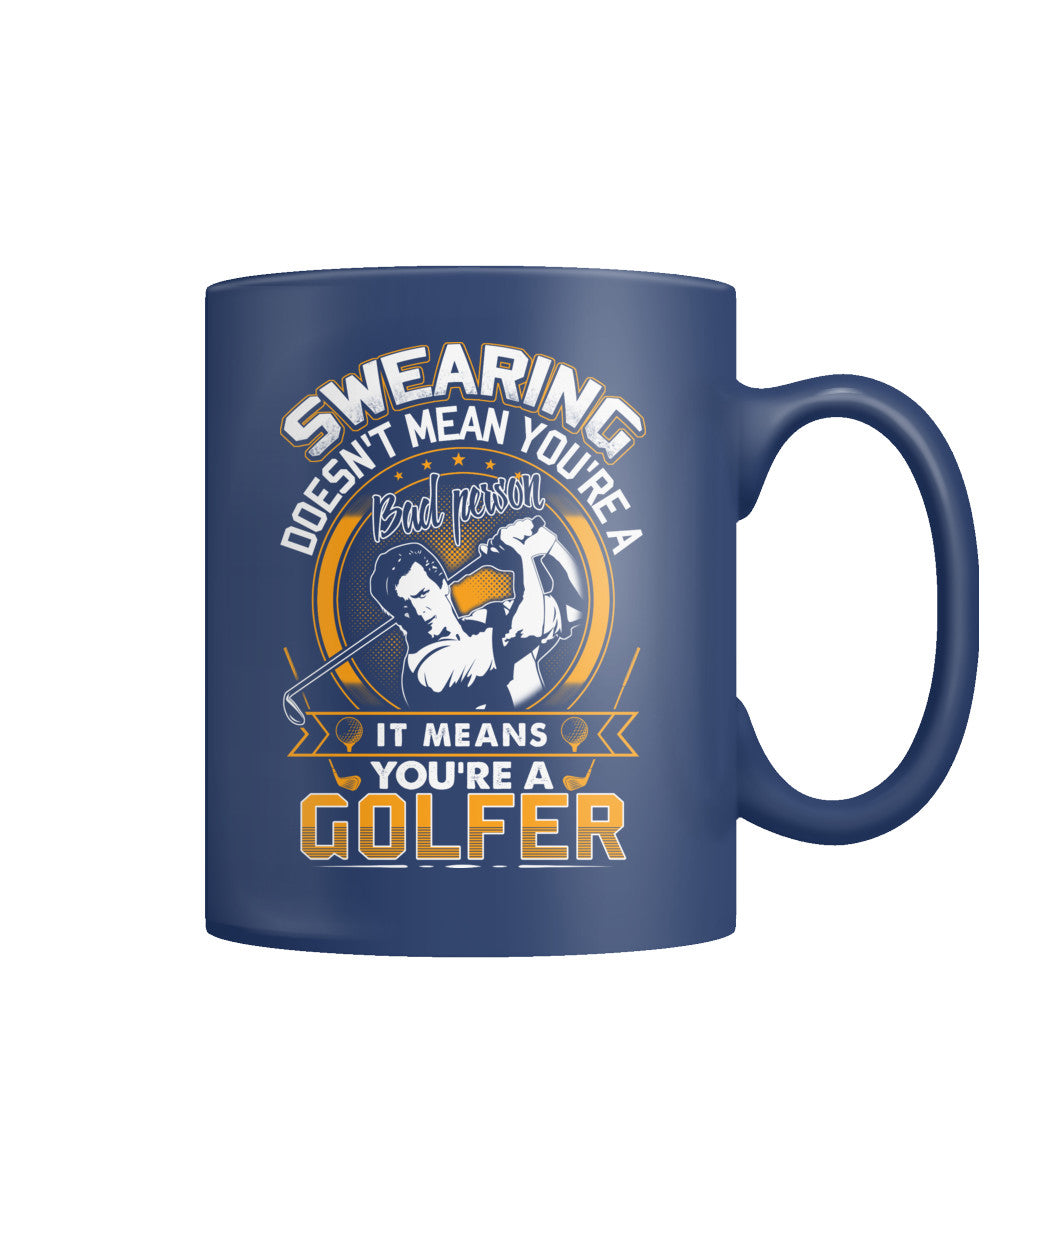 You are a golfer mug Color Coffee Mug-Drinkware - AllGolfUSA.COM